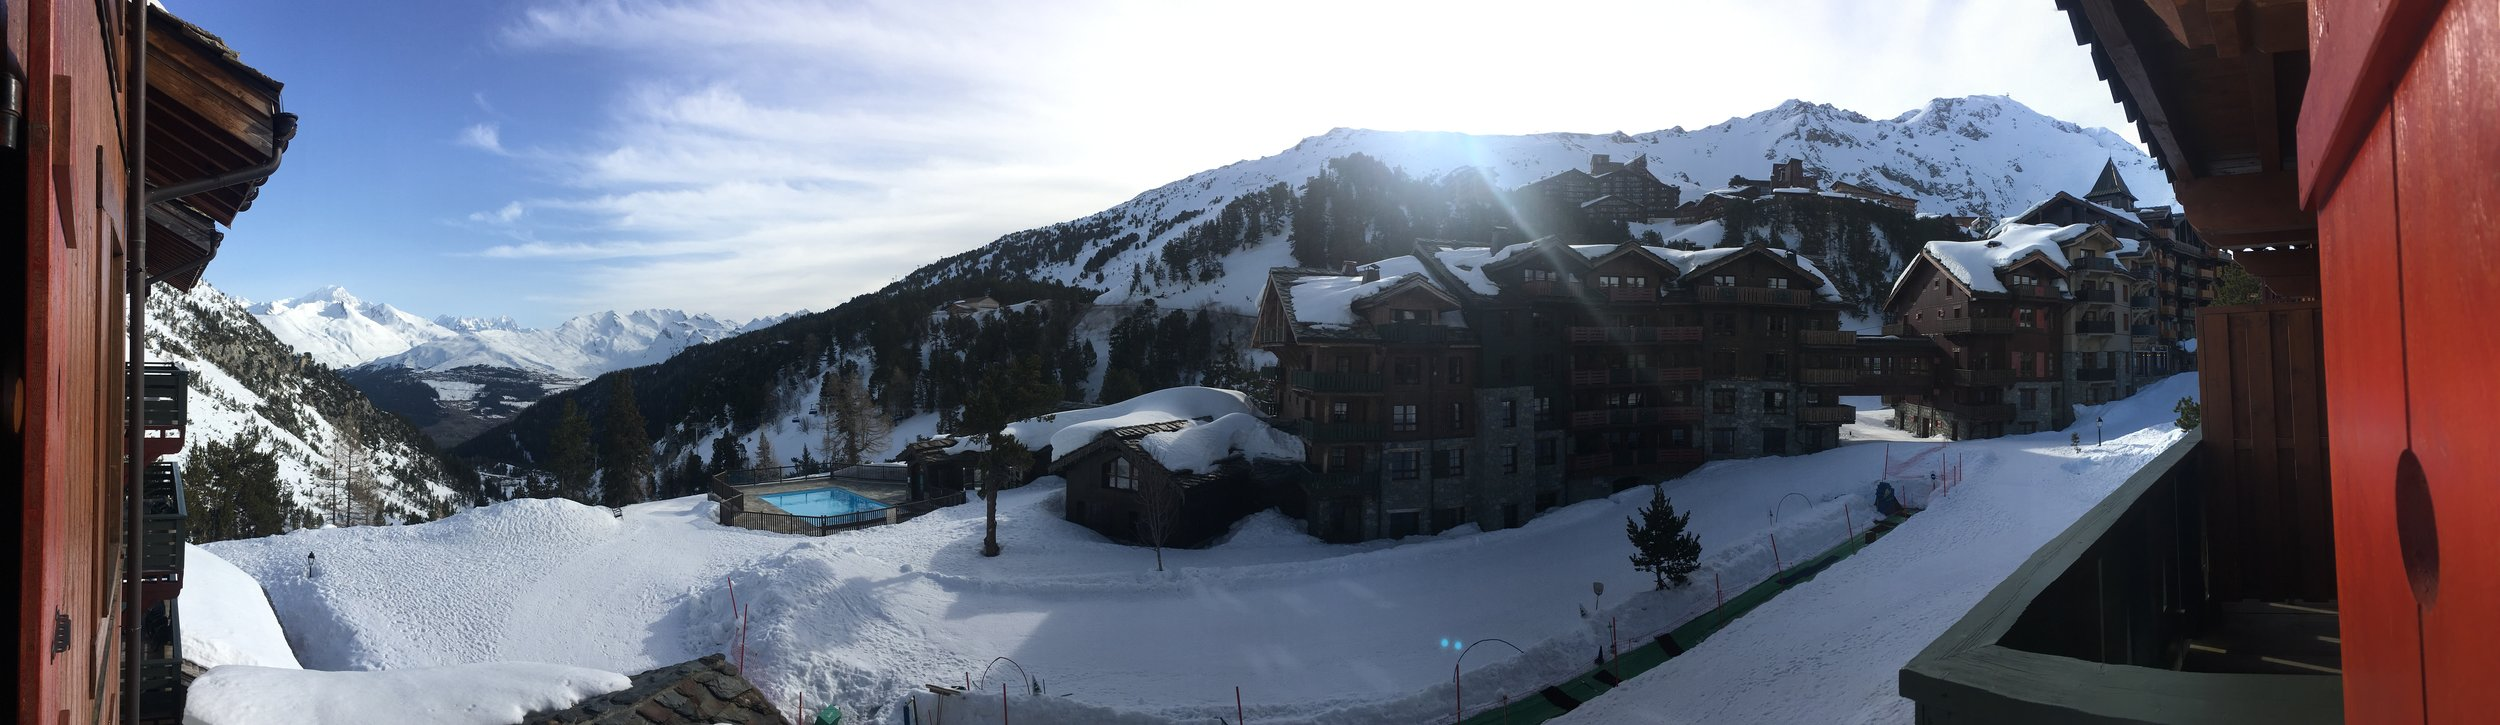 pano from the balcony views skiing snow distance landscape.jpg